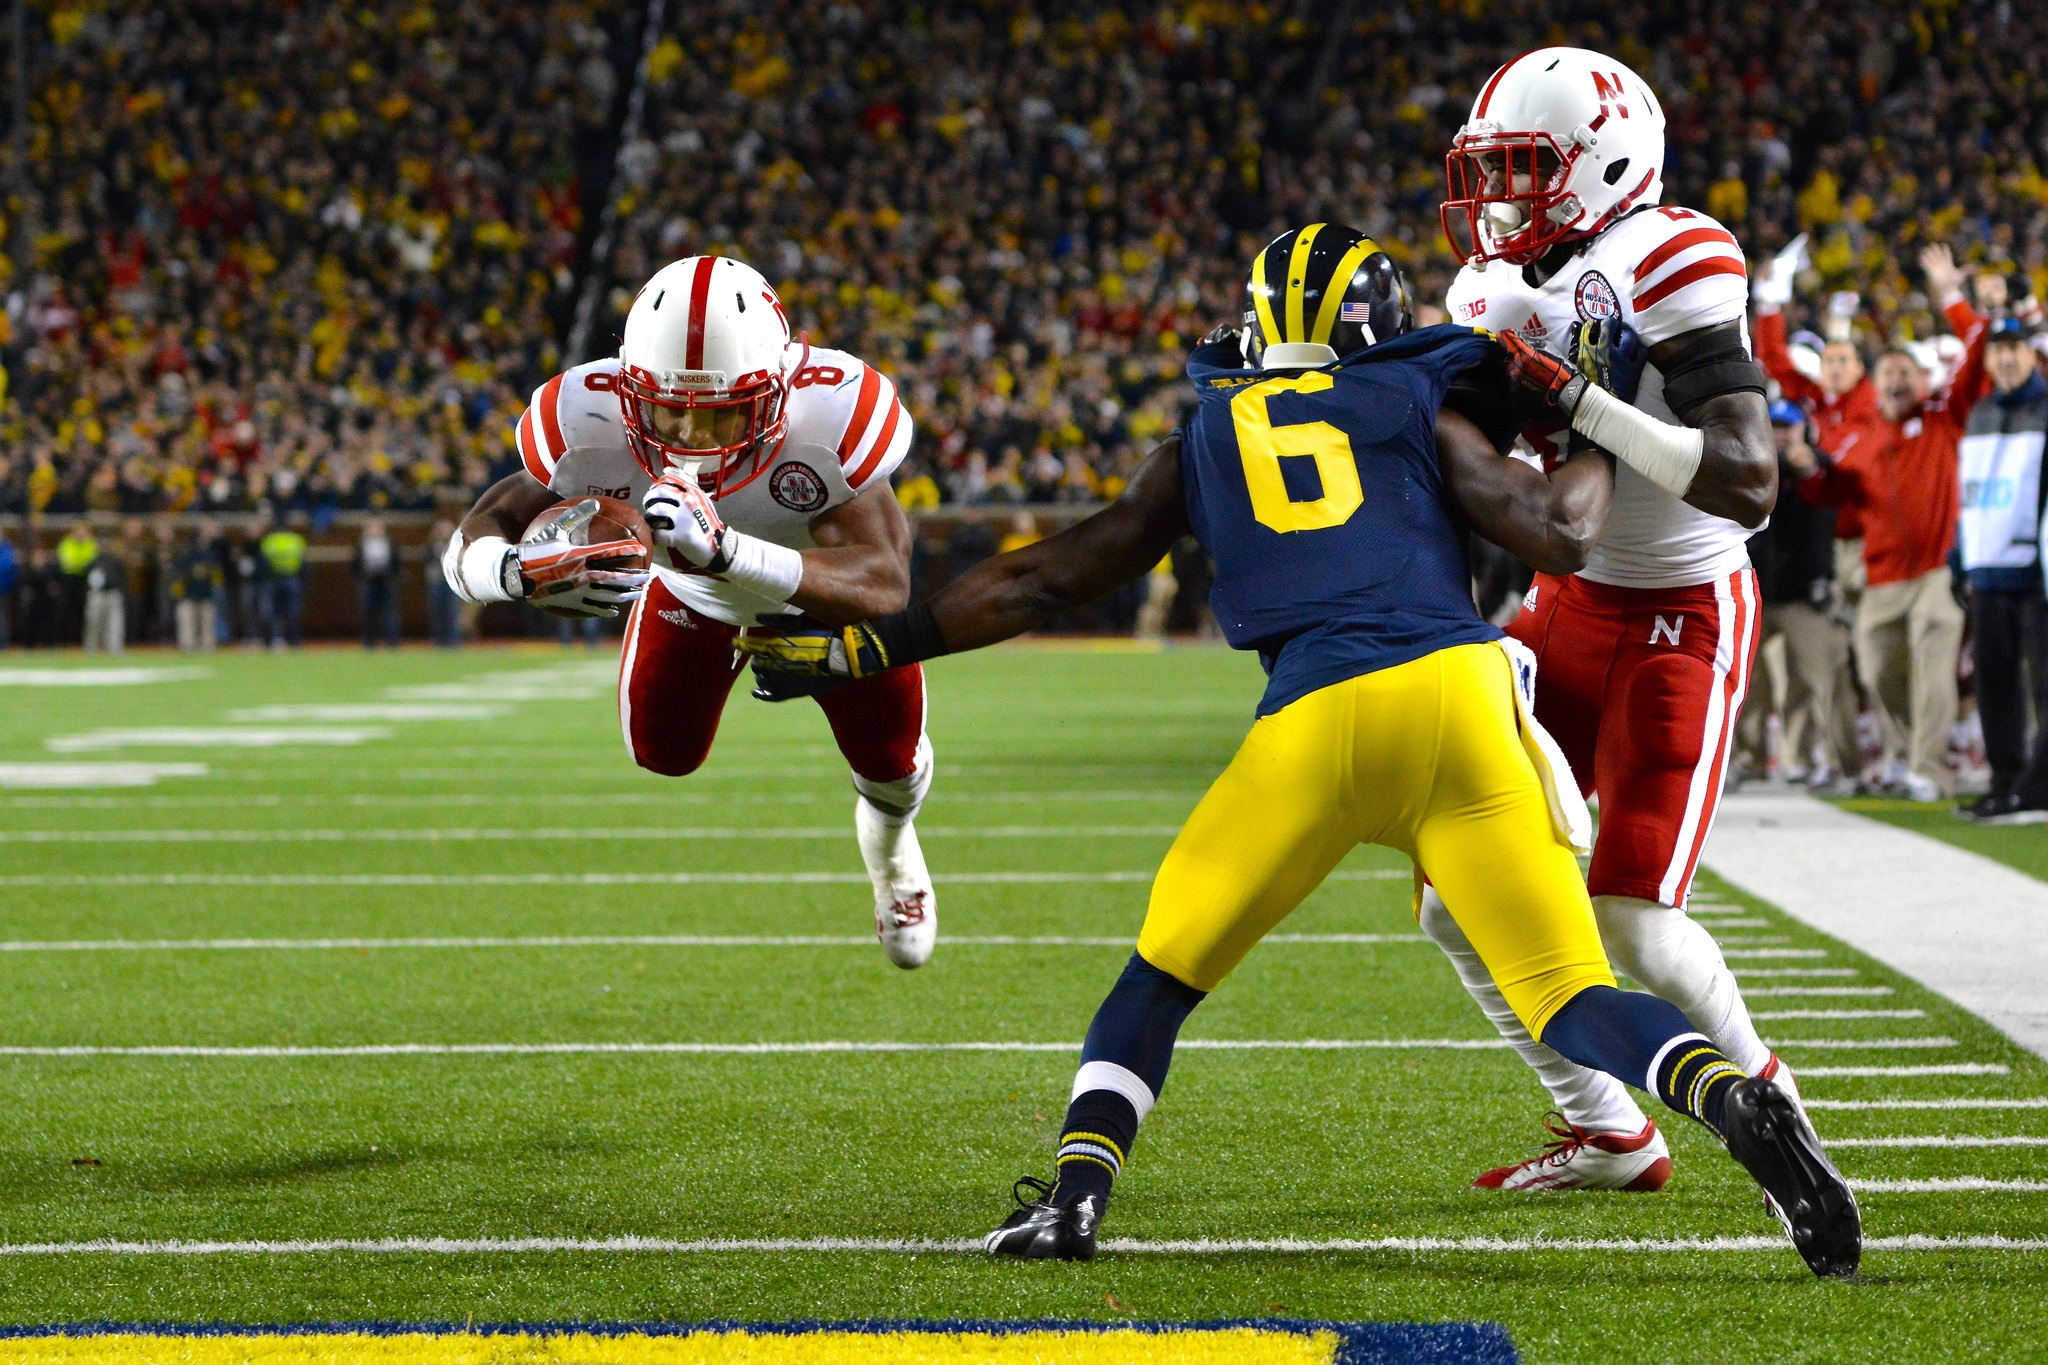 The Boiler Room: Nebraska RB Ameer Abdullah — The Difficulty of Judging Football Speed